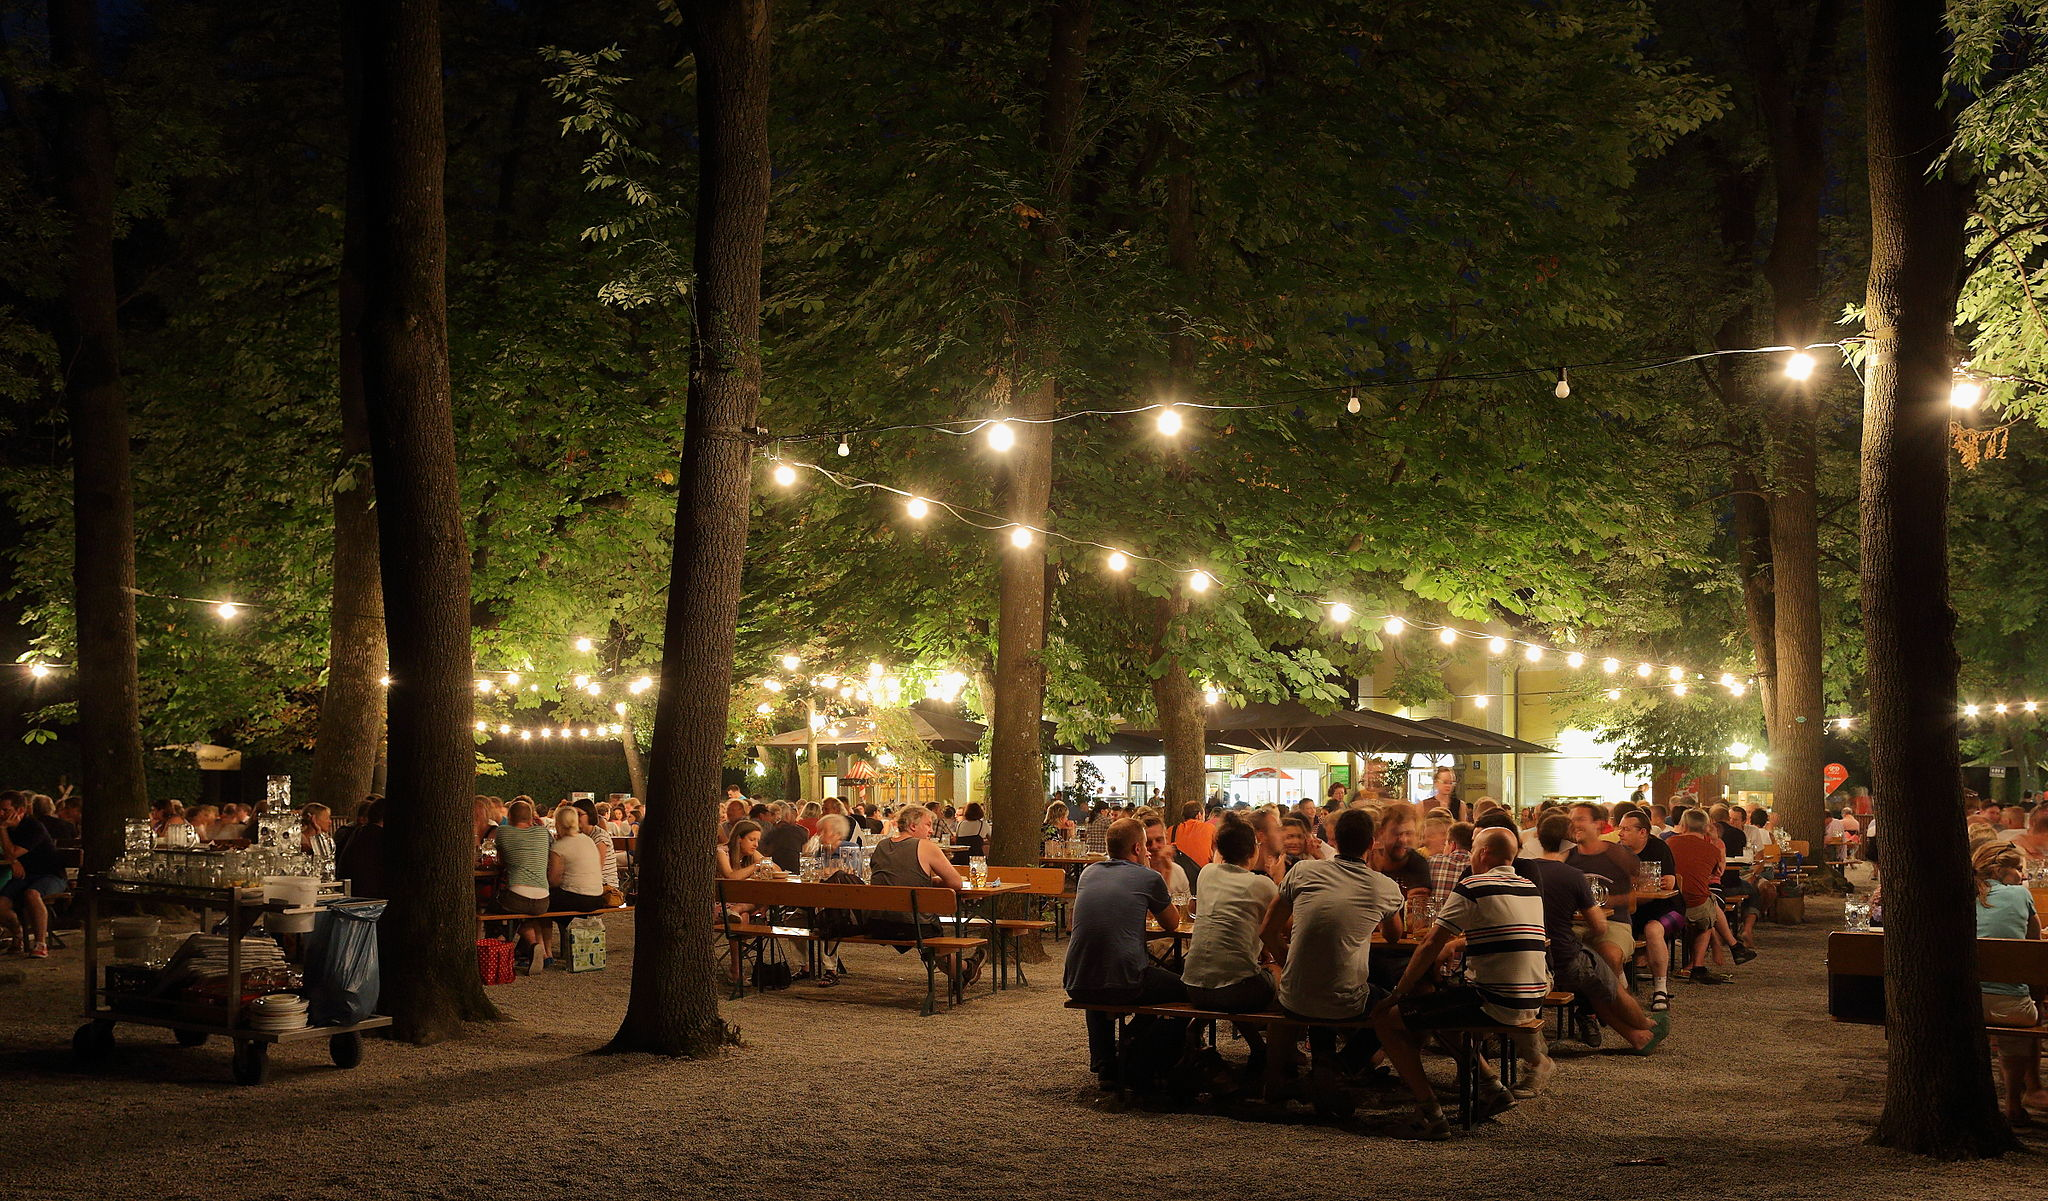 Beer Garden at night